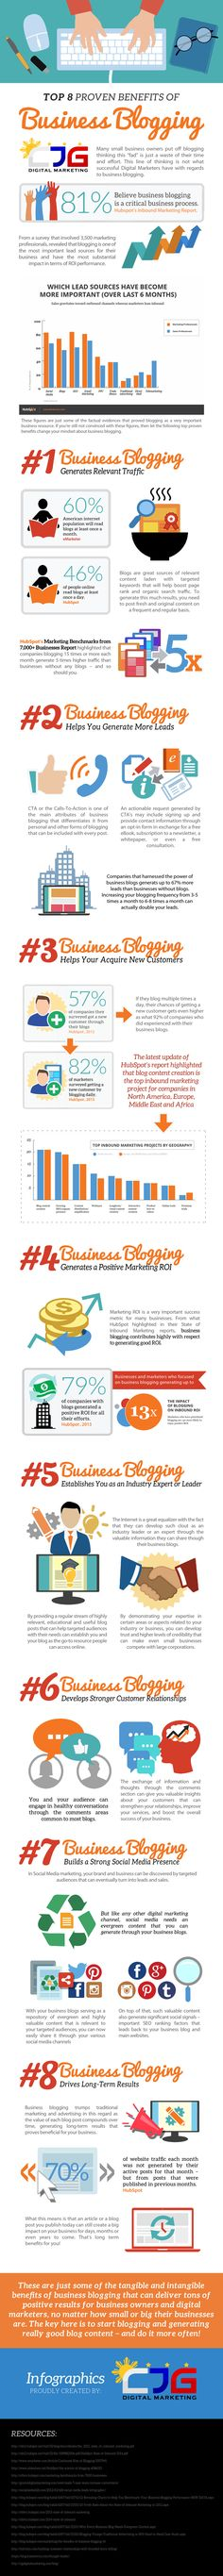 Top 8 Proven Benefits of Business Blogging